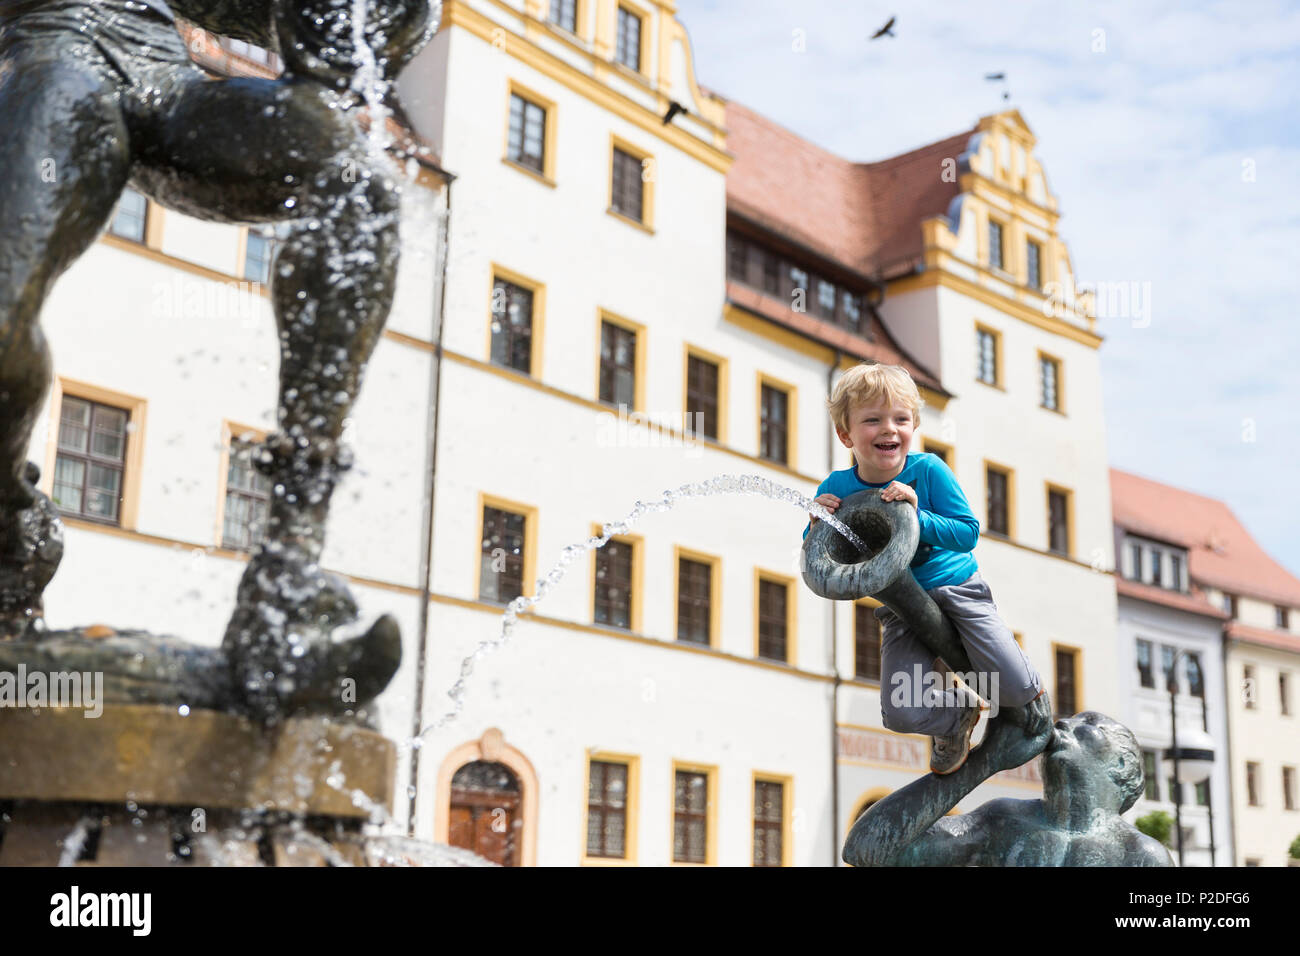 Boy sitting on the fountain outside the town hall, Torgau, Saxony, Germany, Europe Stock Photo